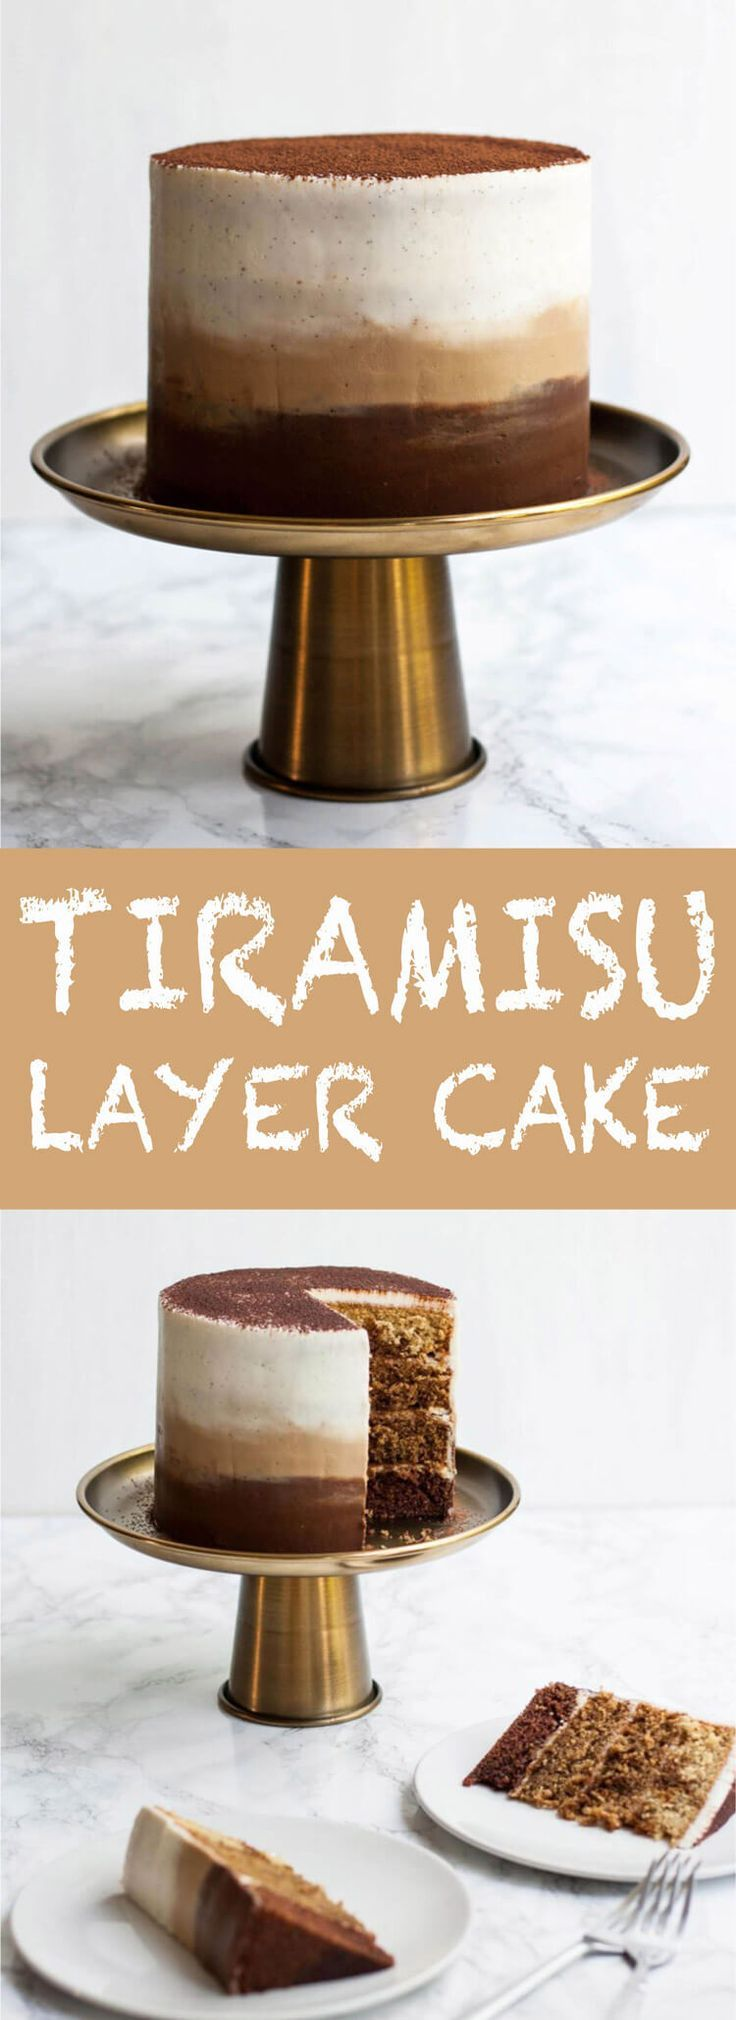 Tiramisu Layer Cake with Ombre Mascarpone Frosting - this decadent tiramisu cake is perfect for coffee addicts - it's light and flavorful, an ideal birthday cake! | Eat Love Eats